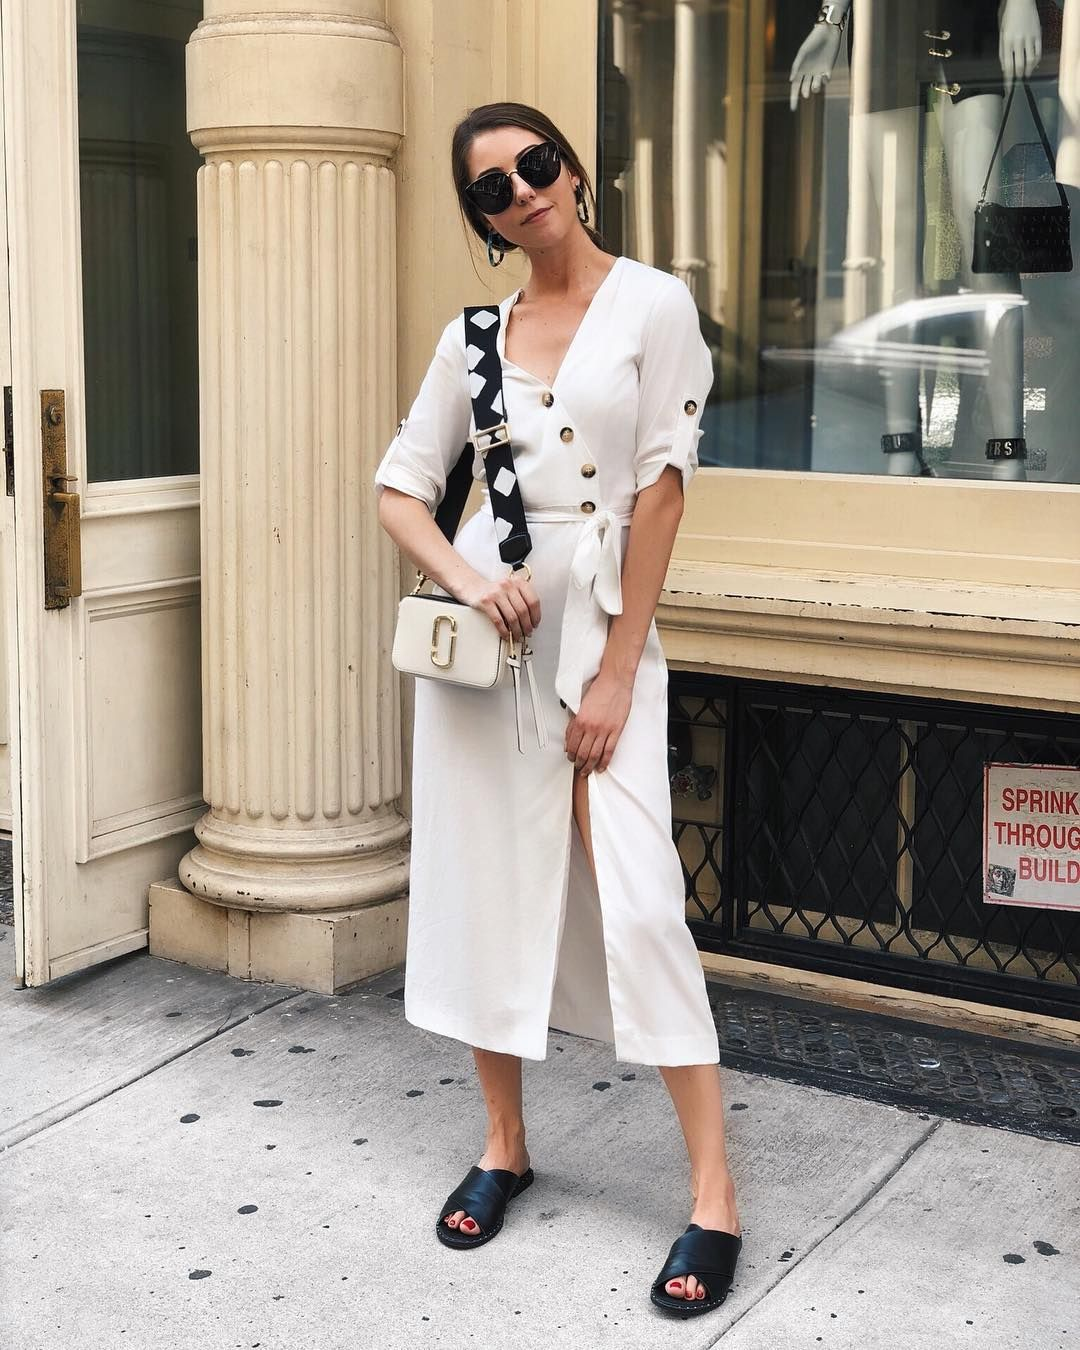 aedc9b63b2 Erin Moroz spotted with our Marc Jacobs Snapshot Bag in Cloud White ...